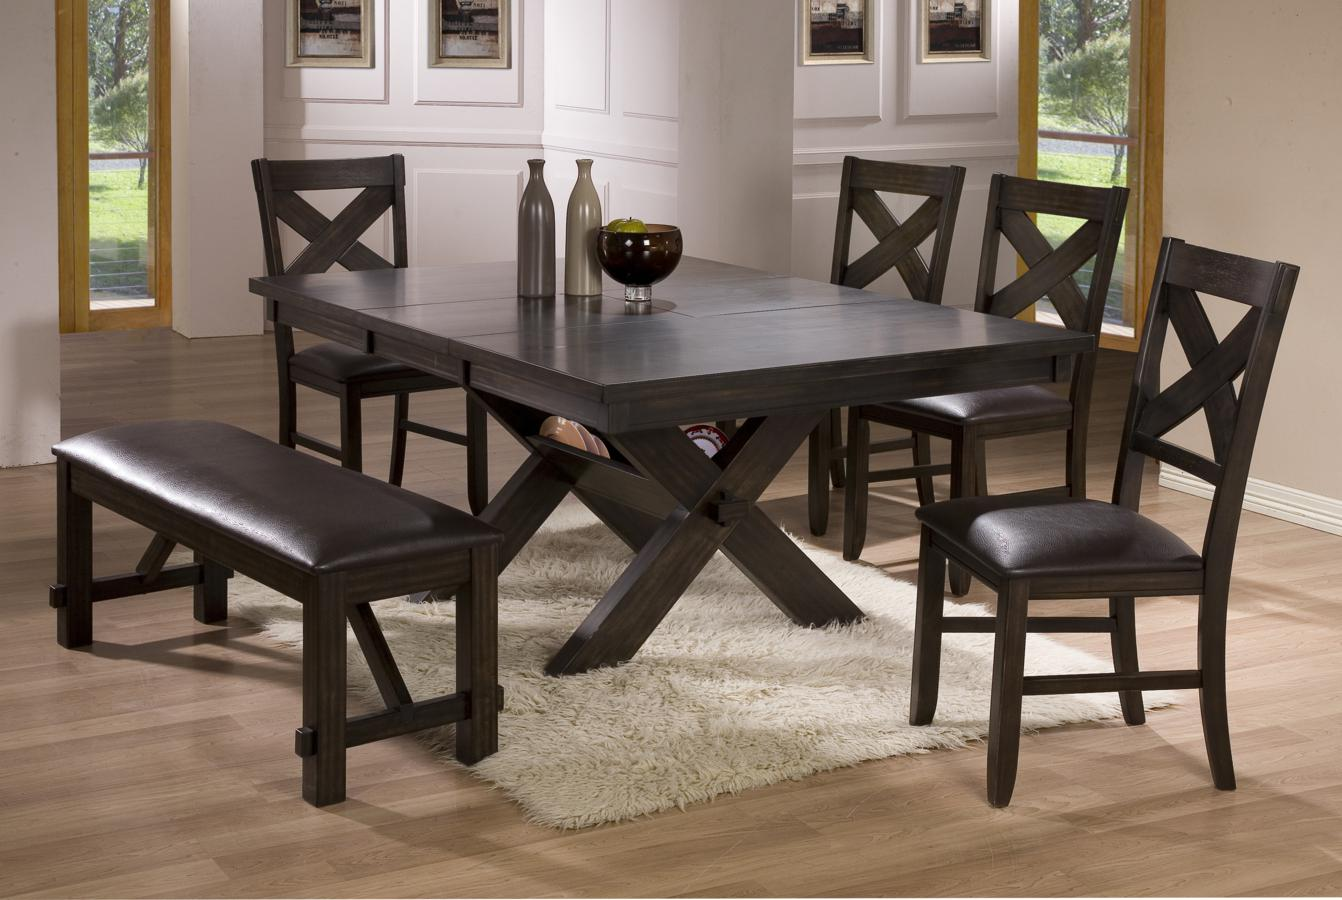 Kelly 6pc Dining Table with 4 Chairs & Bench Set